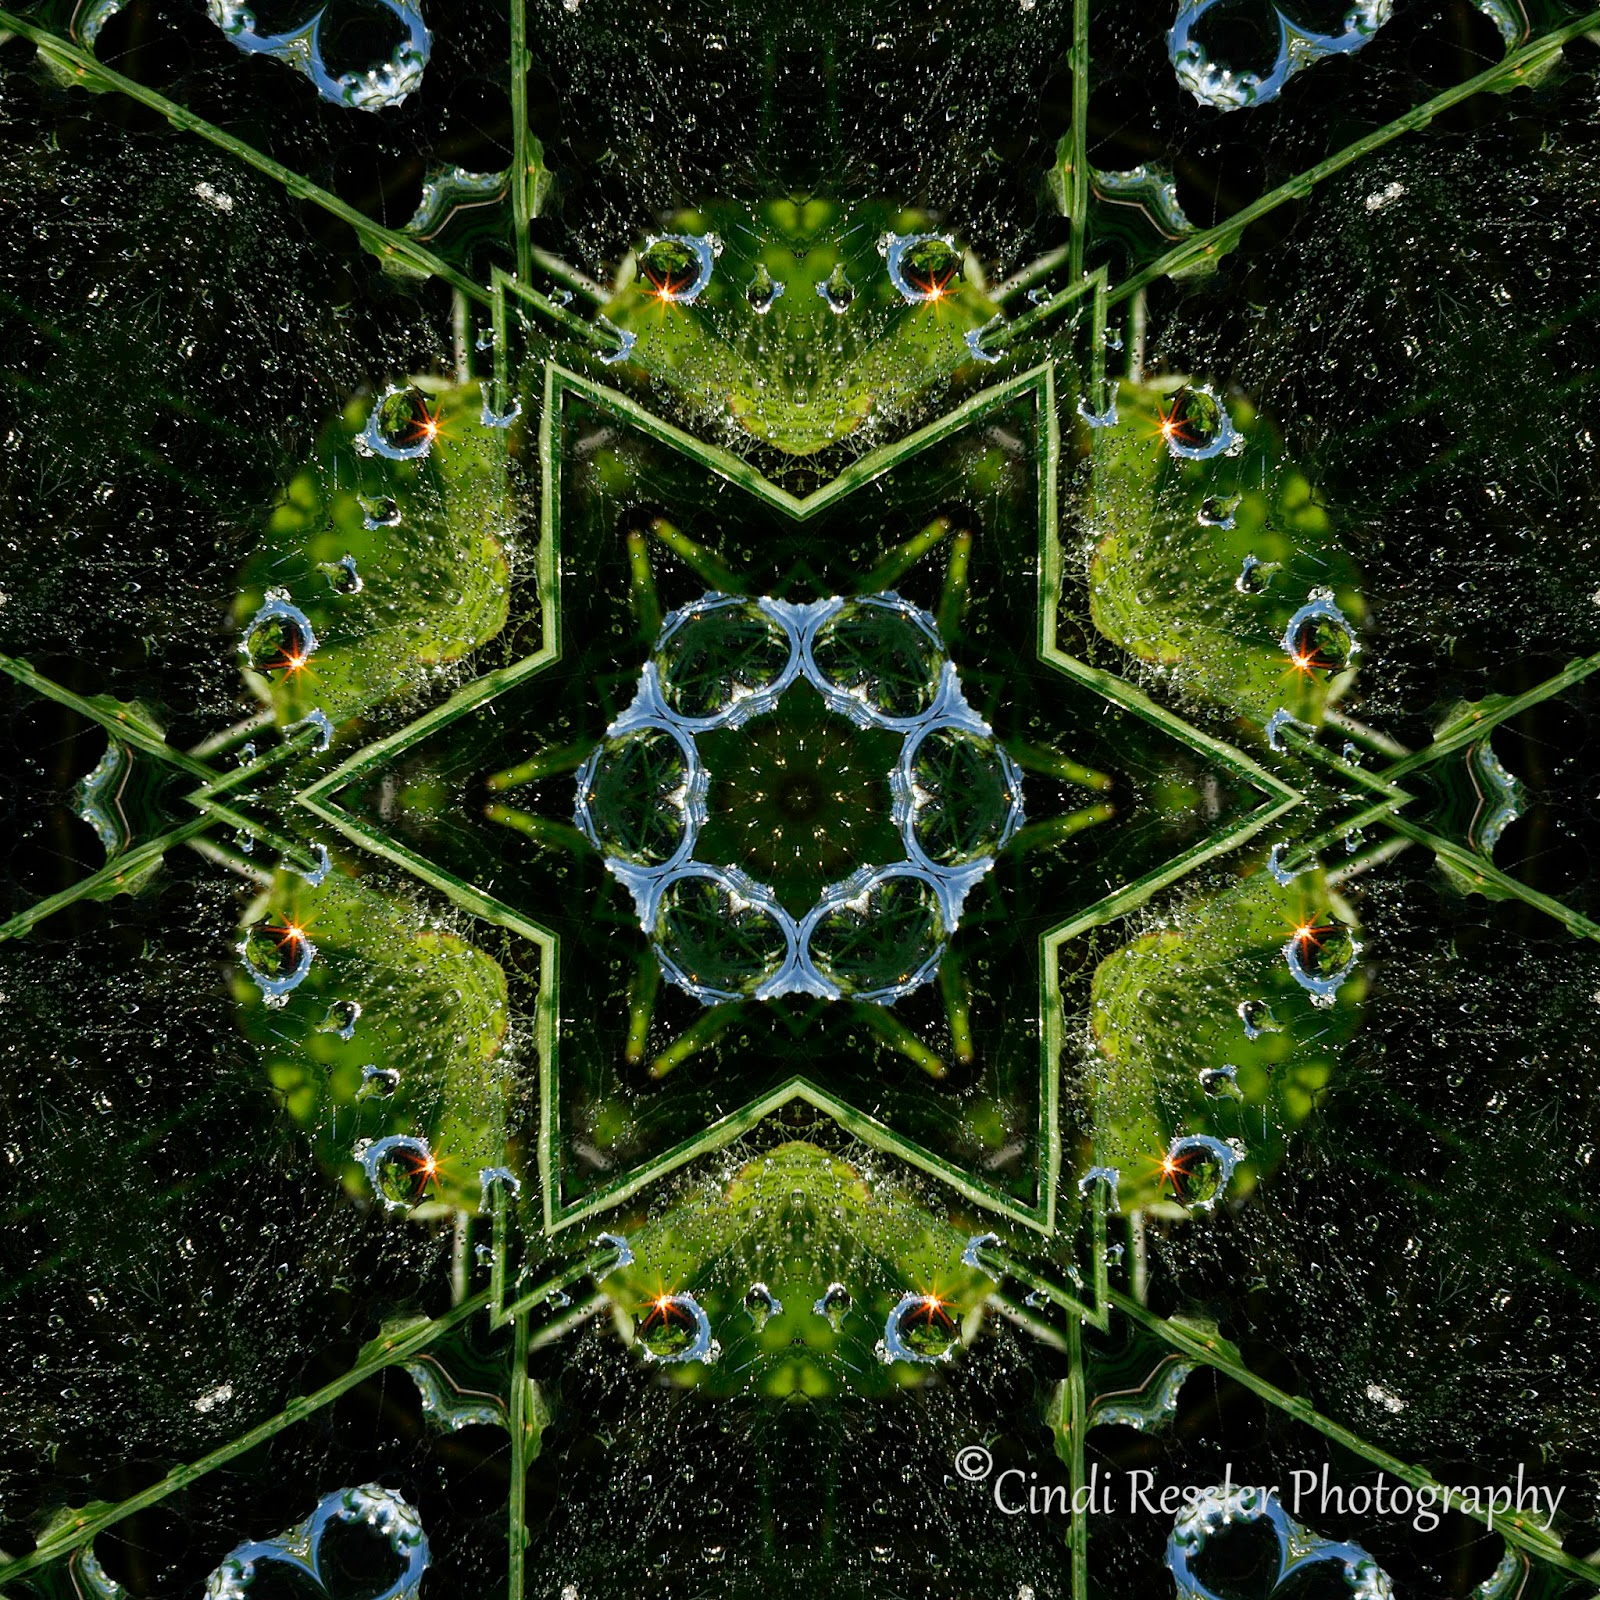 https://www.etsy.com/listing/217429002/frog-kaleidoscope-fine-art-photo-art?ref=shop_home_active_11